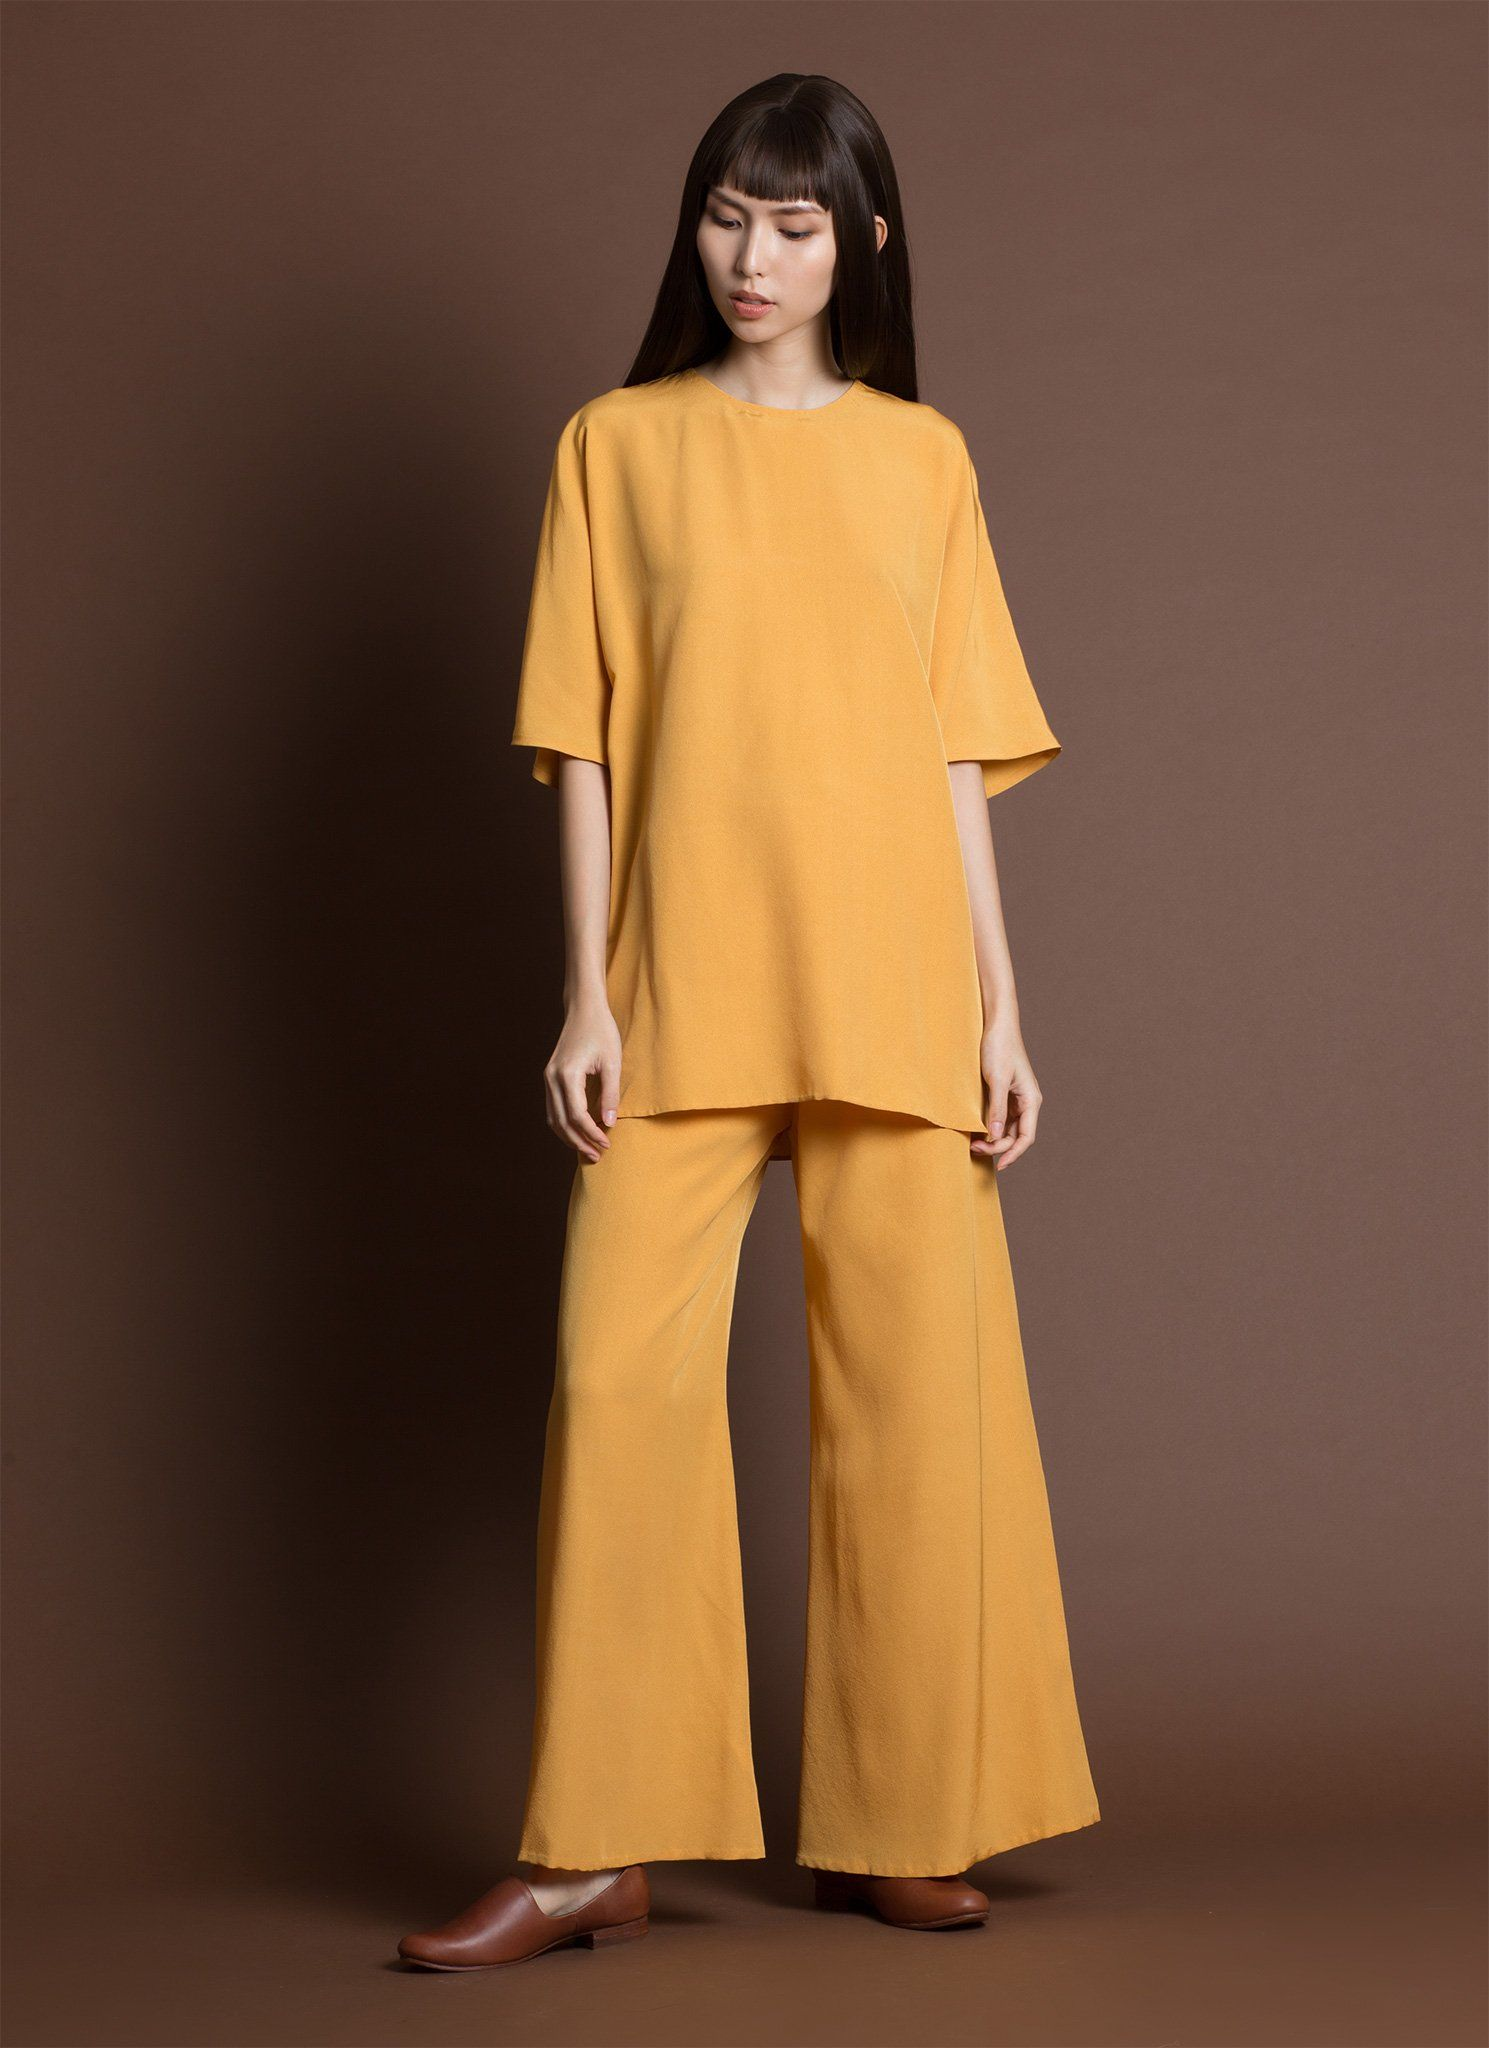 16d1b37fcc Song Tu Wide Leg Silk Pants - Persimmon Yellow in 2019 | Products ...